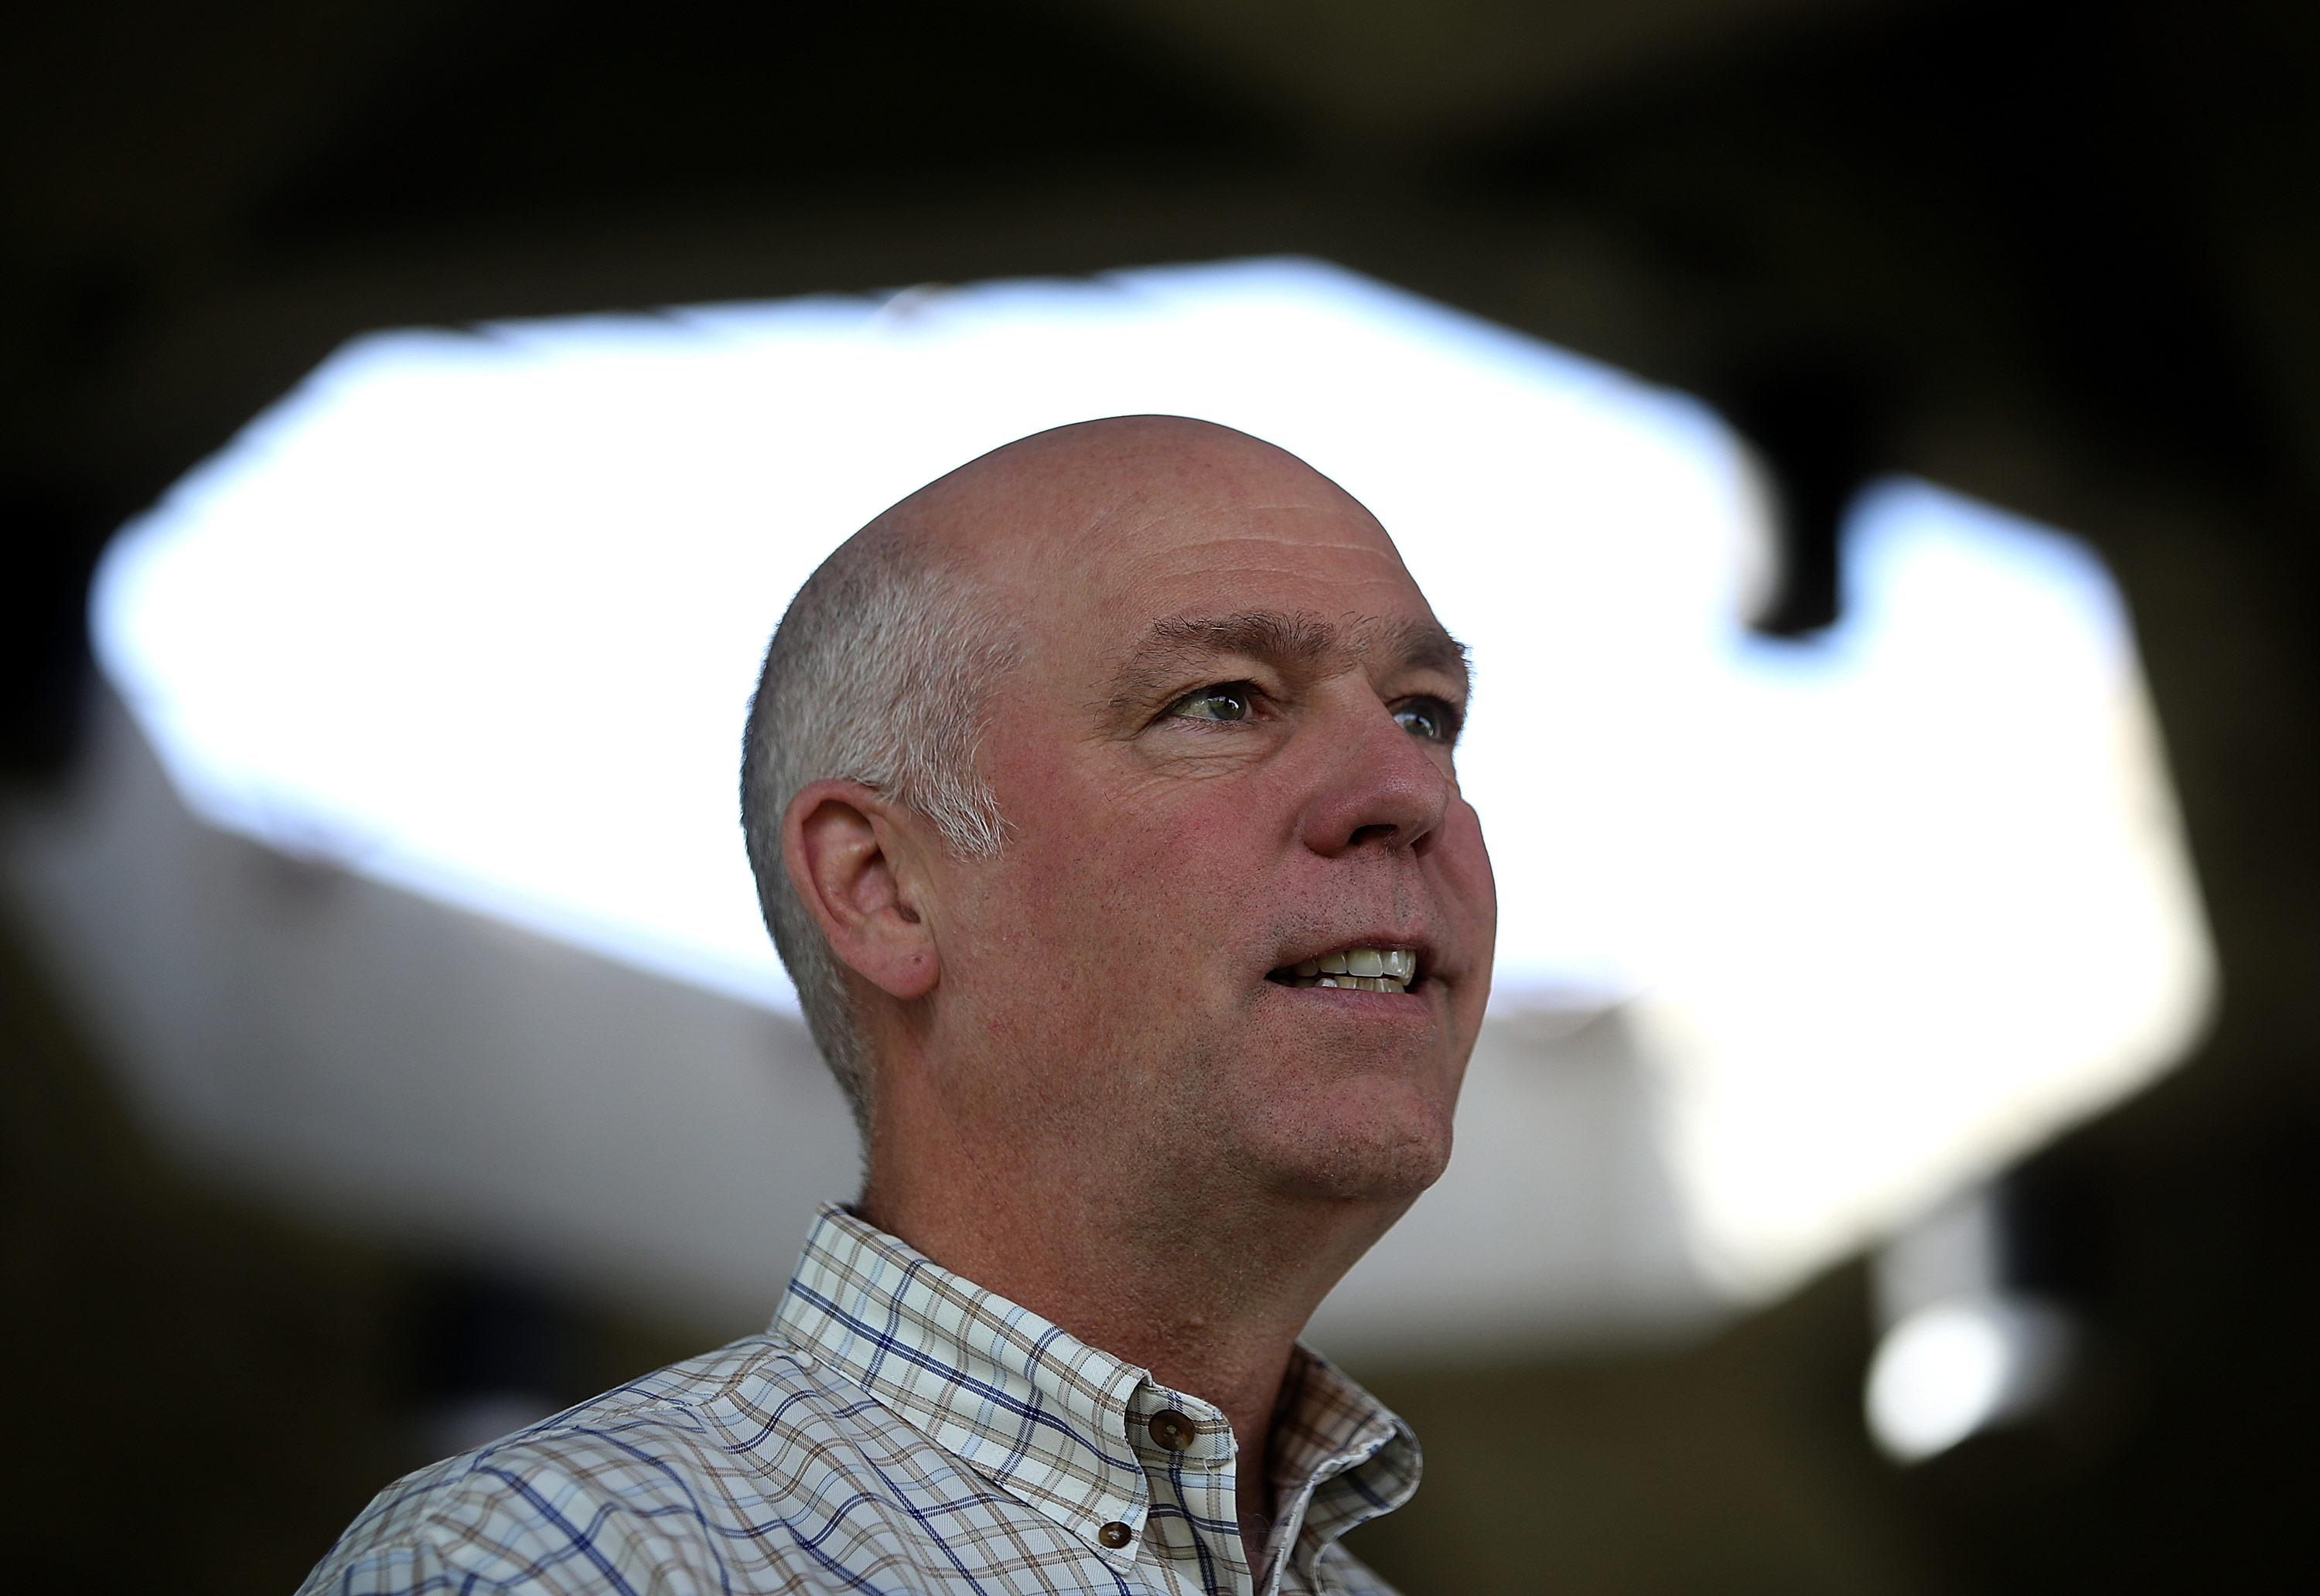 Montana's Greg Gianforte suspends in-person campaigning after wife, running mate attended event with Kimberly Guilfoyle